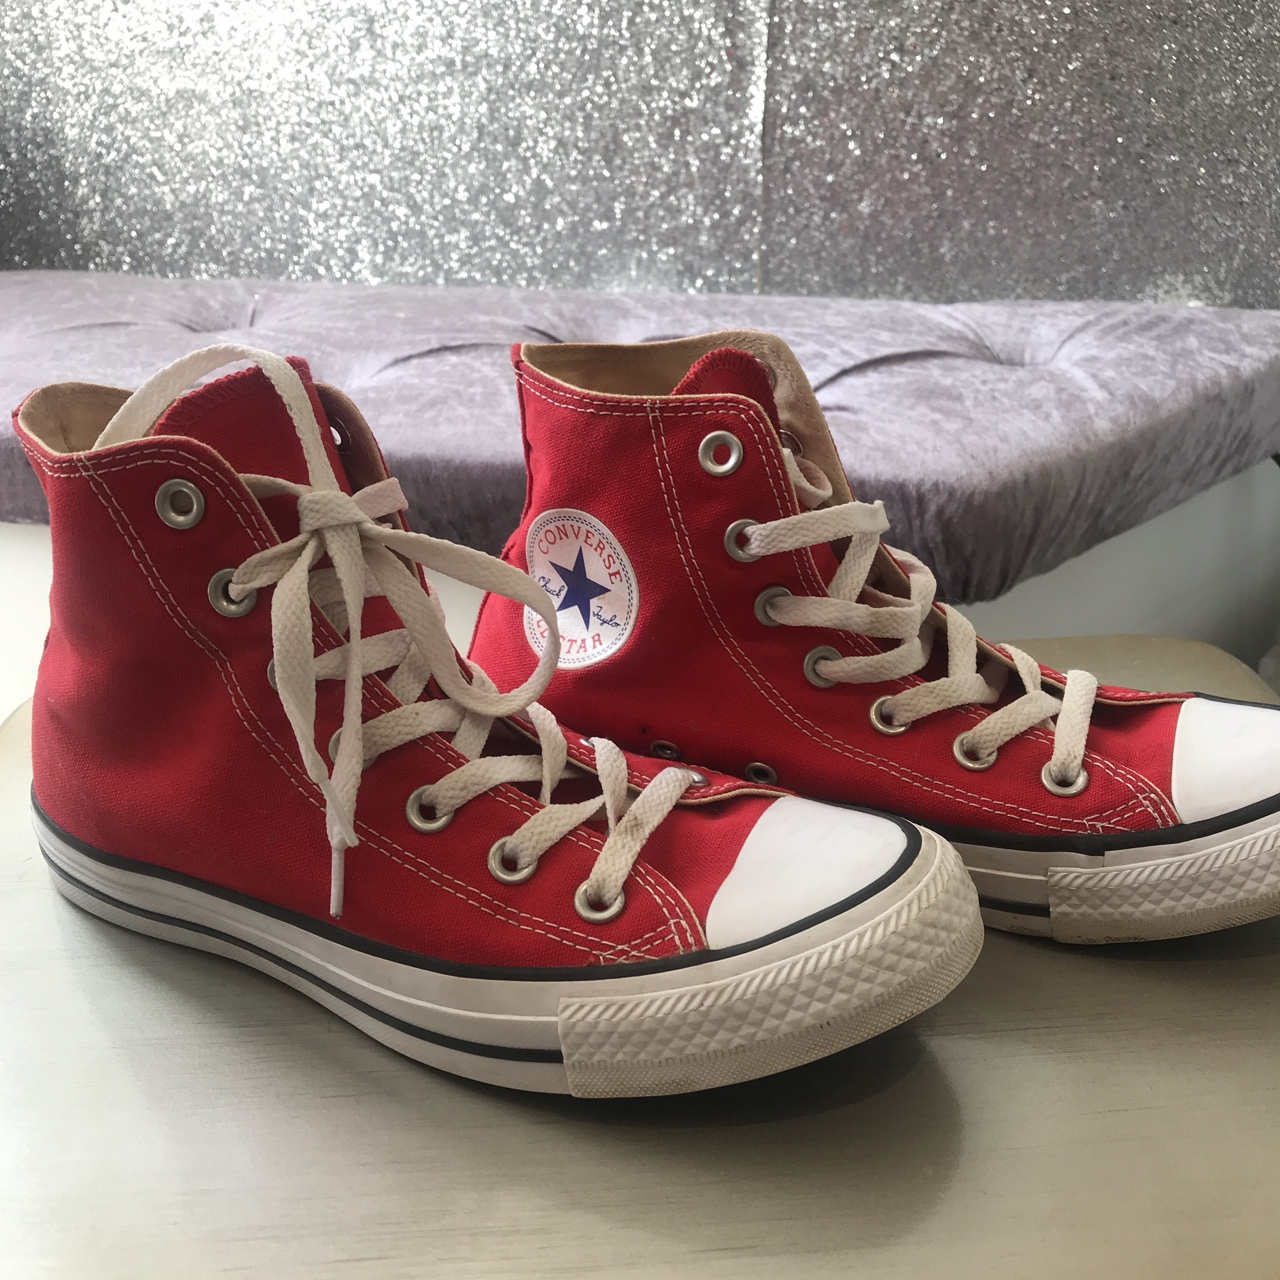 Red Converse all star Chuck Taylor's worm about 3 Depop